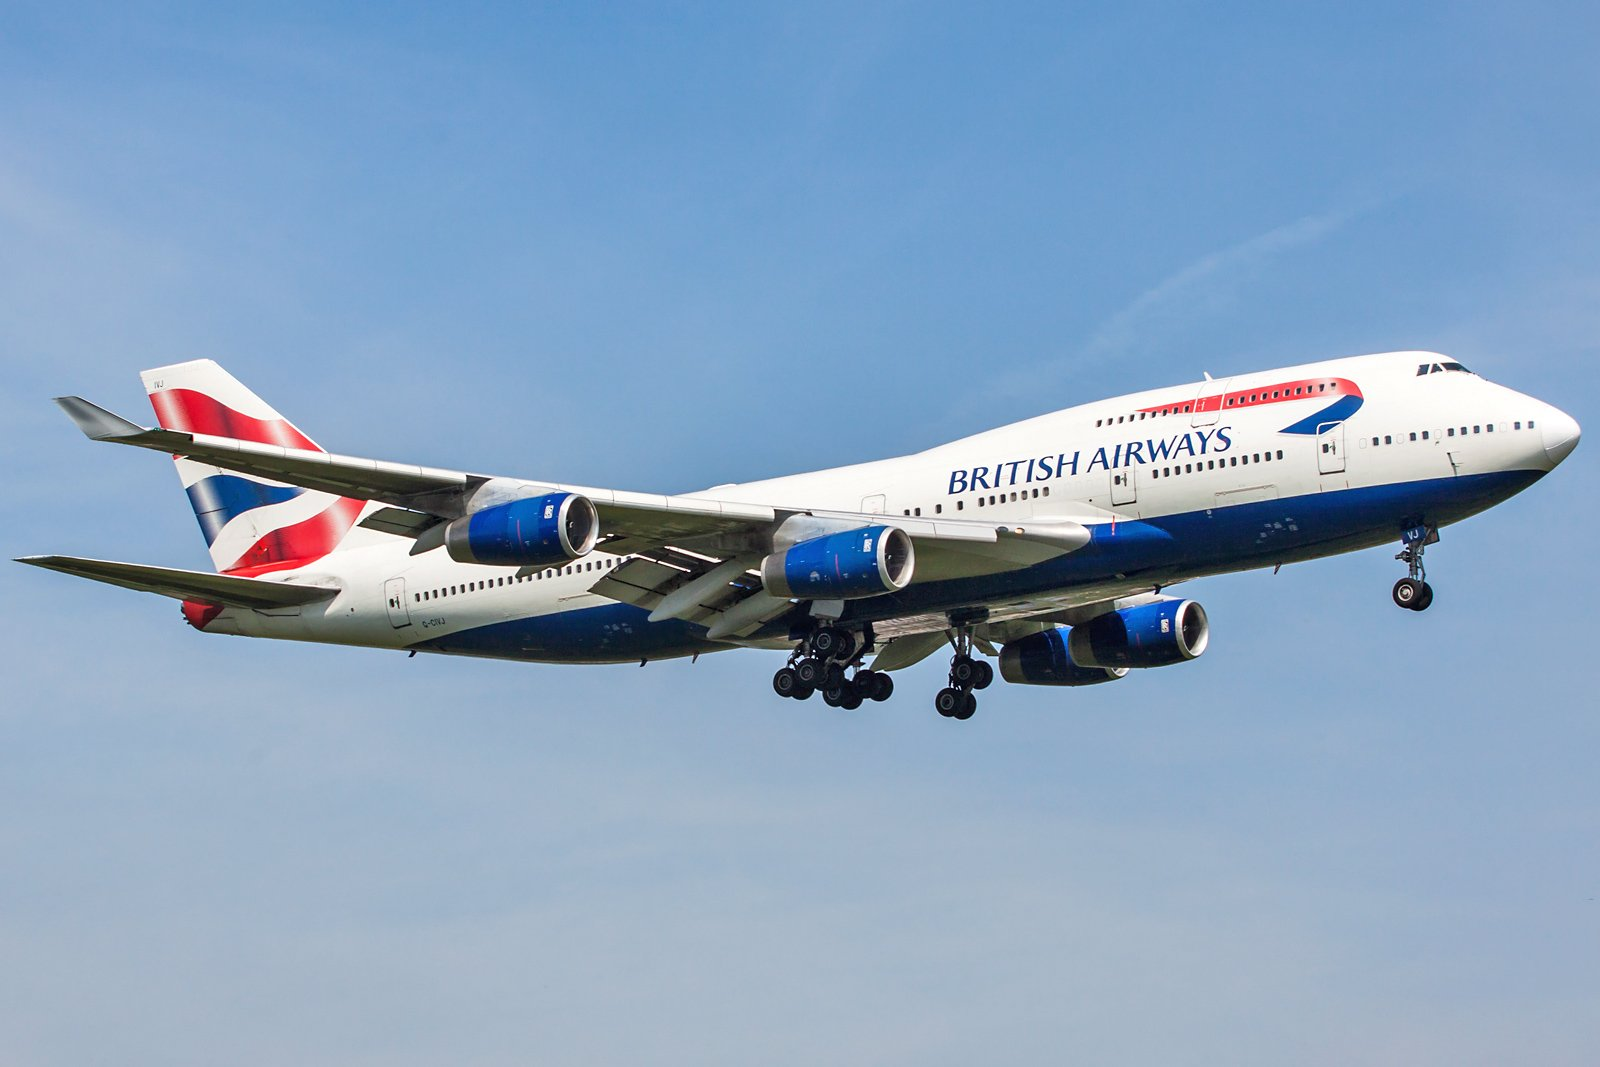 British Airways Boeing 747-436 G-CIVJ